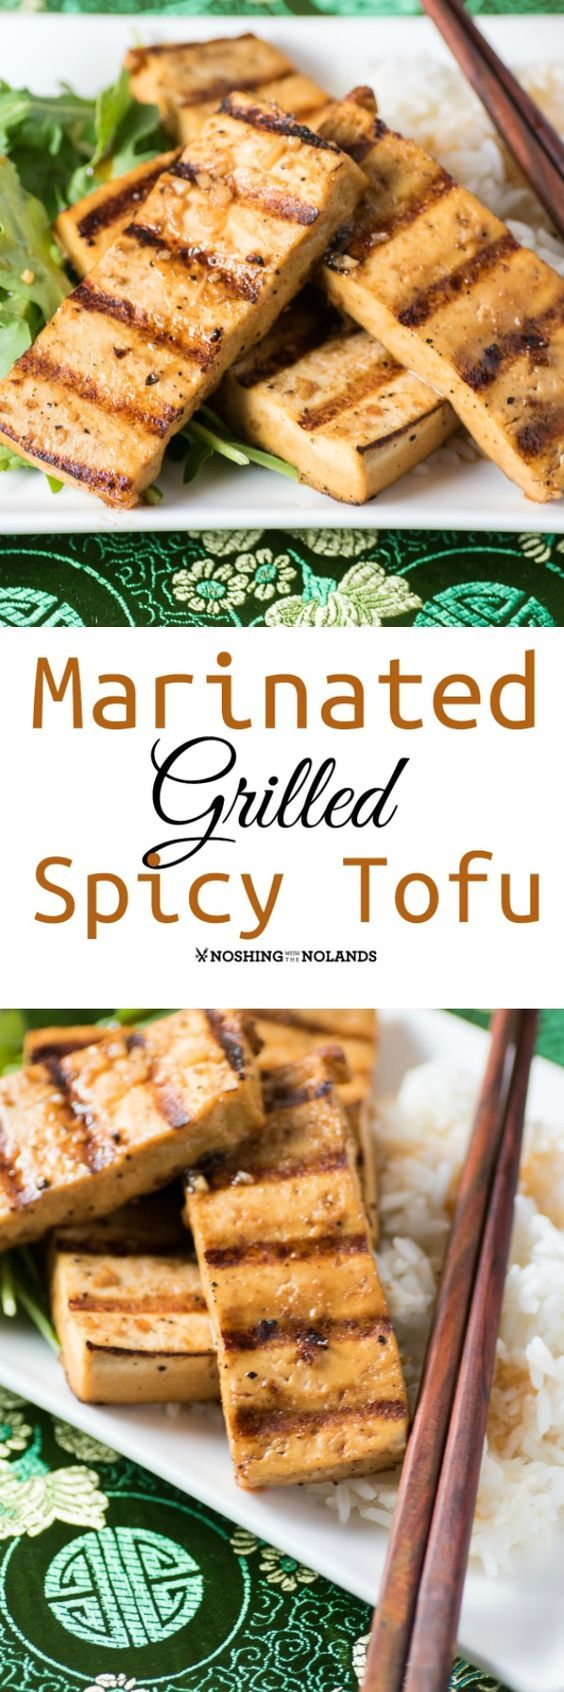 Marinated Grilled Spicy Tofu by Noshing With The Nolands is a delicious appetizer or main dish done on the BBQ with an Asian twist! #ad